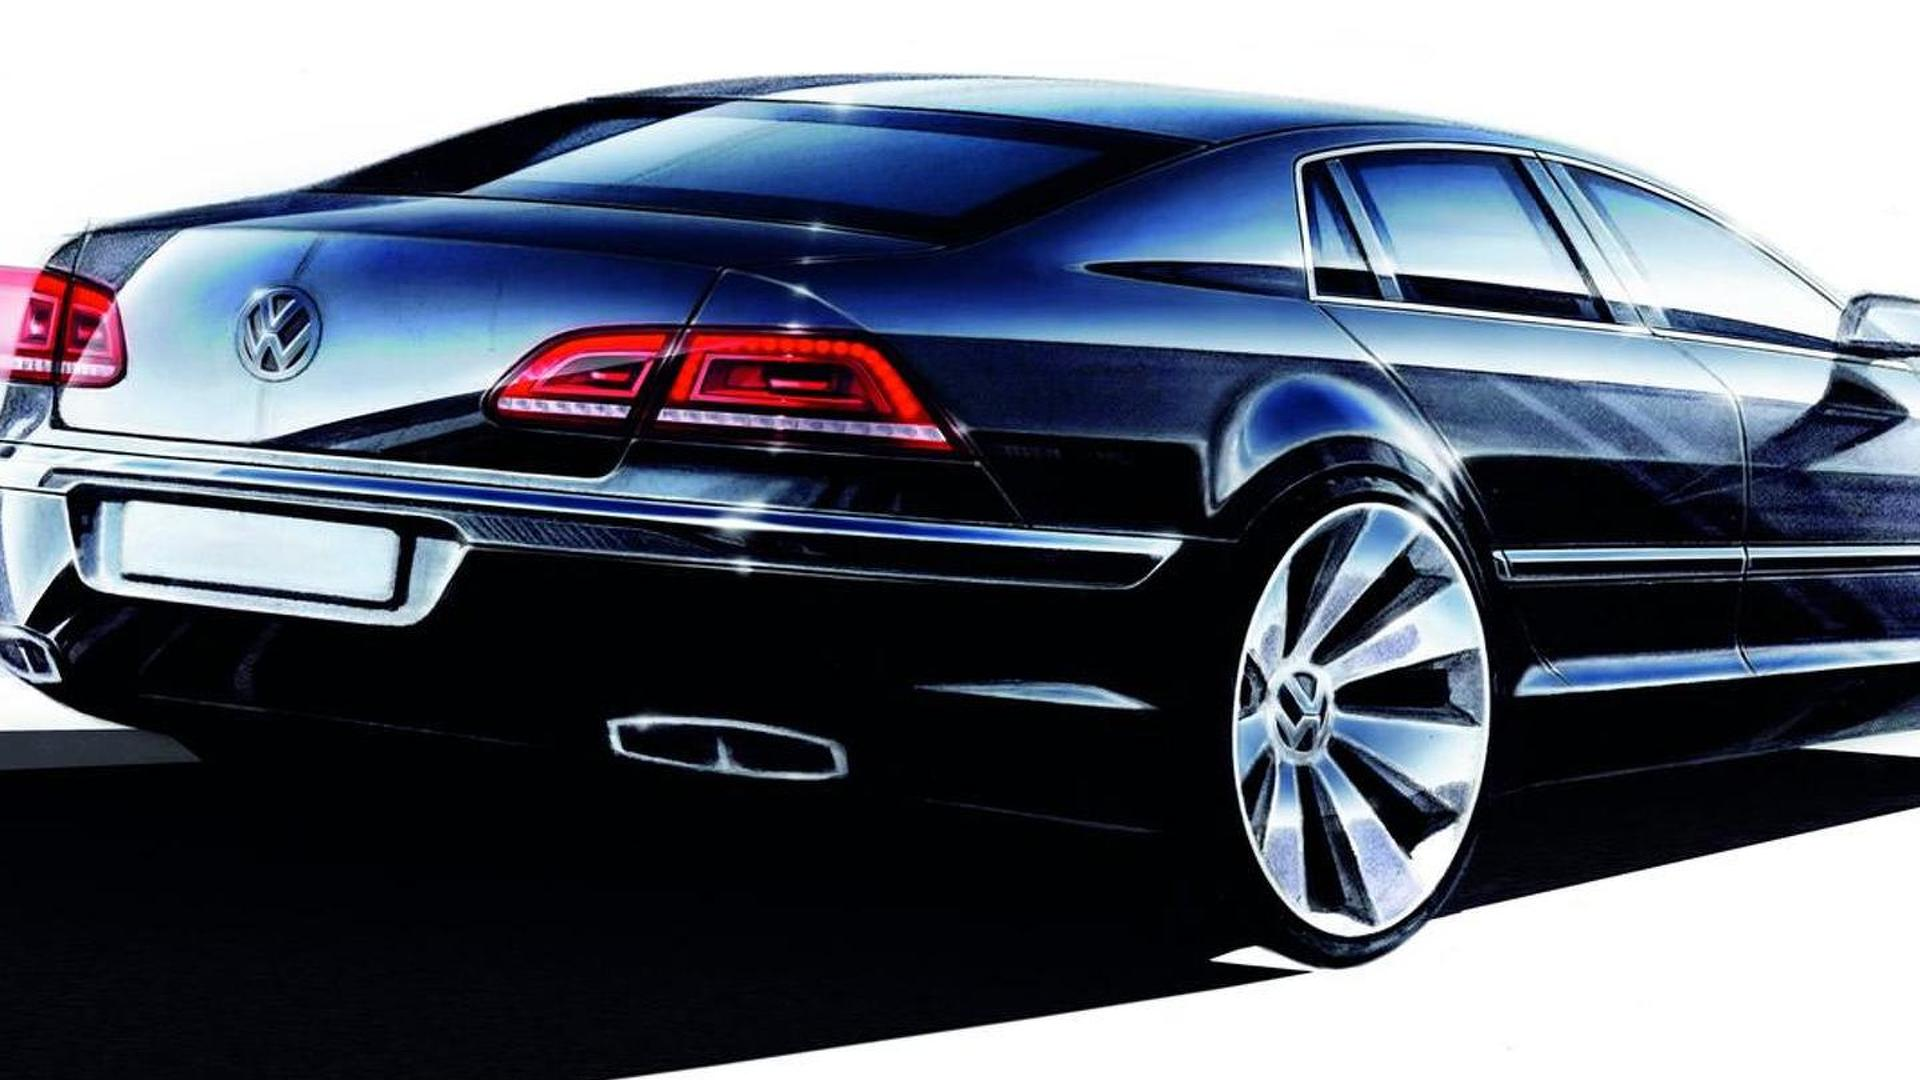 Volkswagen Phaeton replacement coming in 2015?